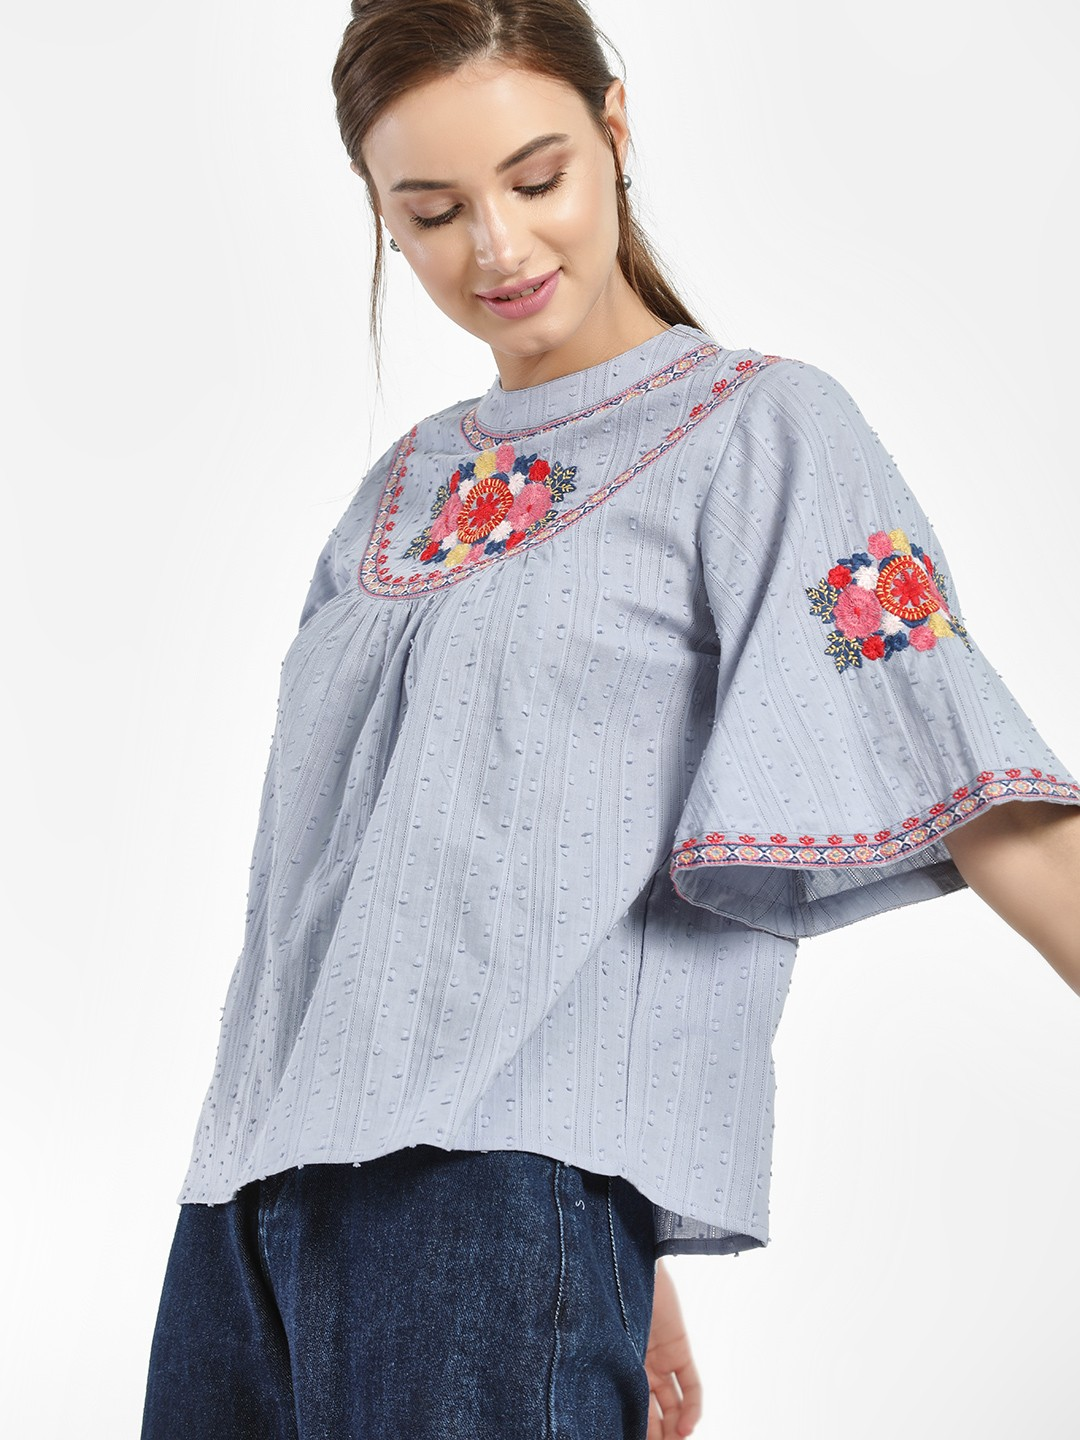 Rena Love Blue Floral Embroidered Dobby Blouse 1